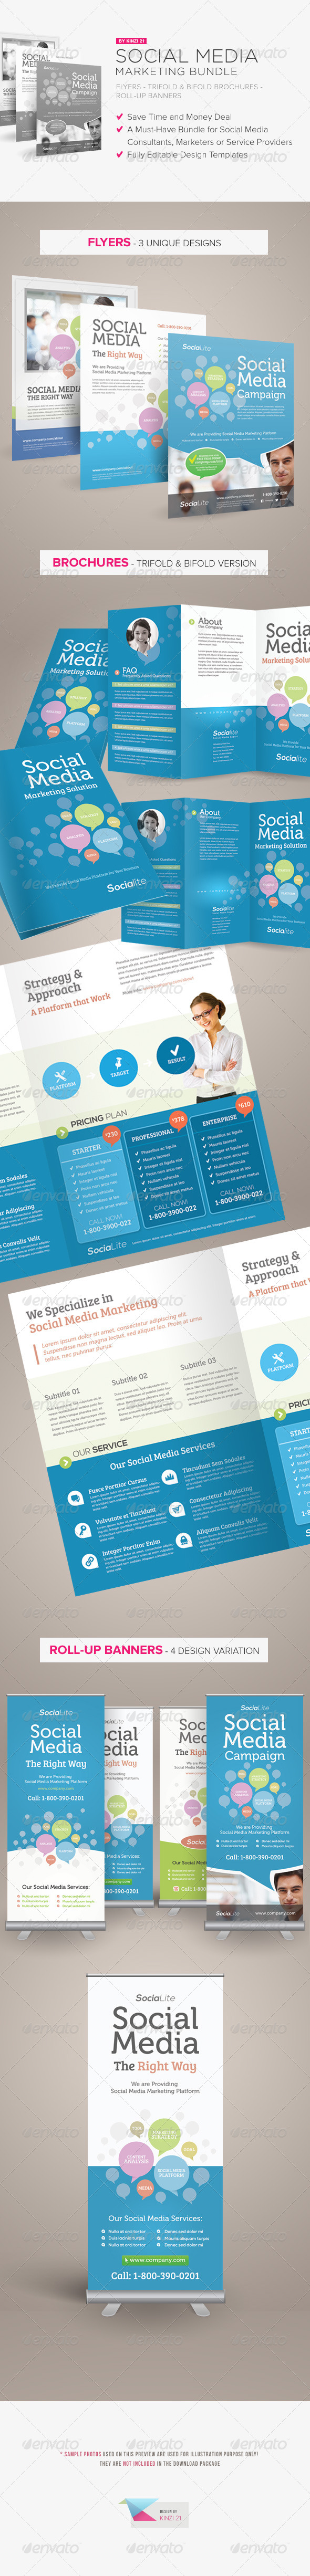 Social Media Marketing Bundle - Print Templates